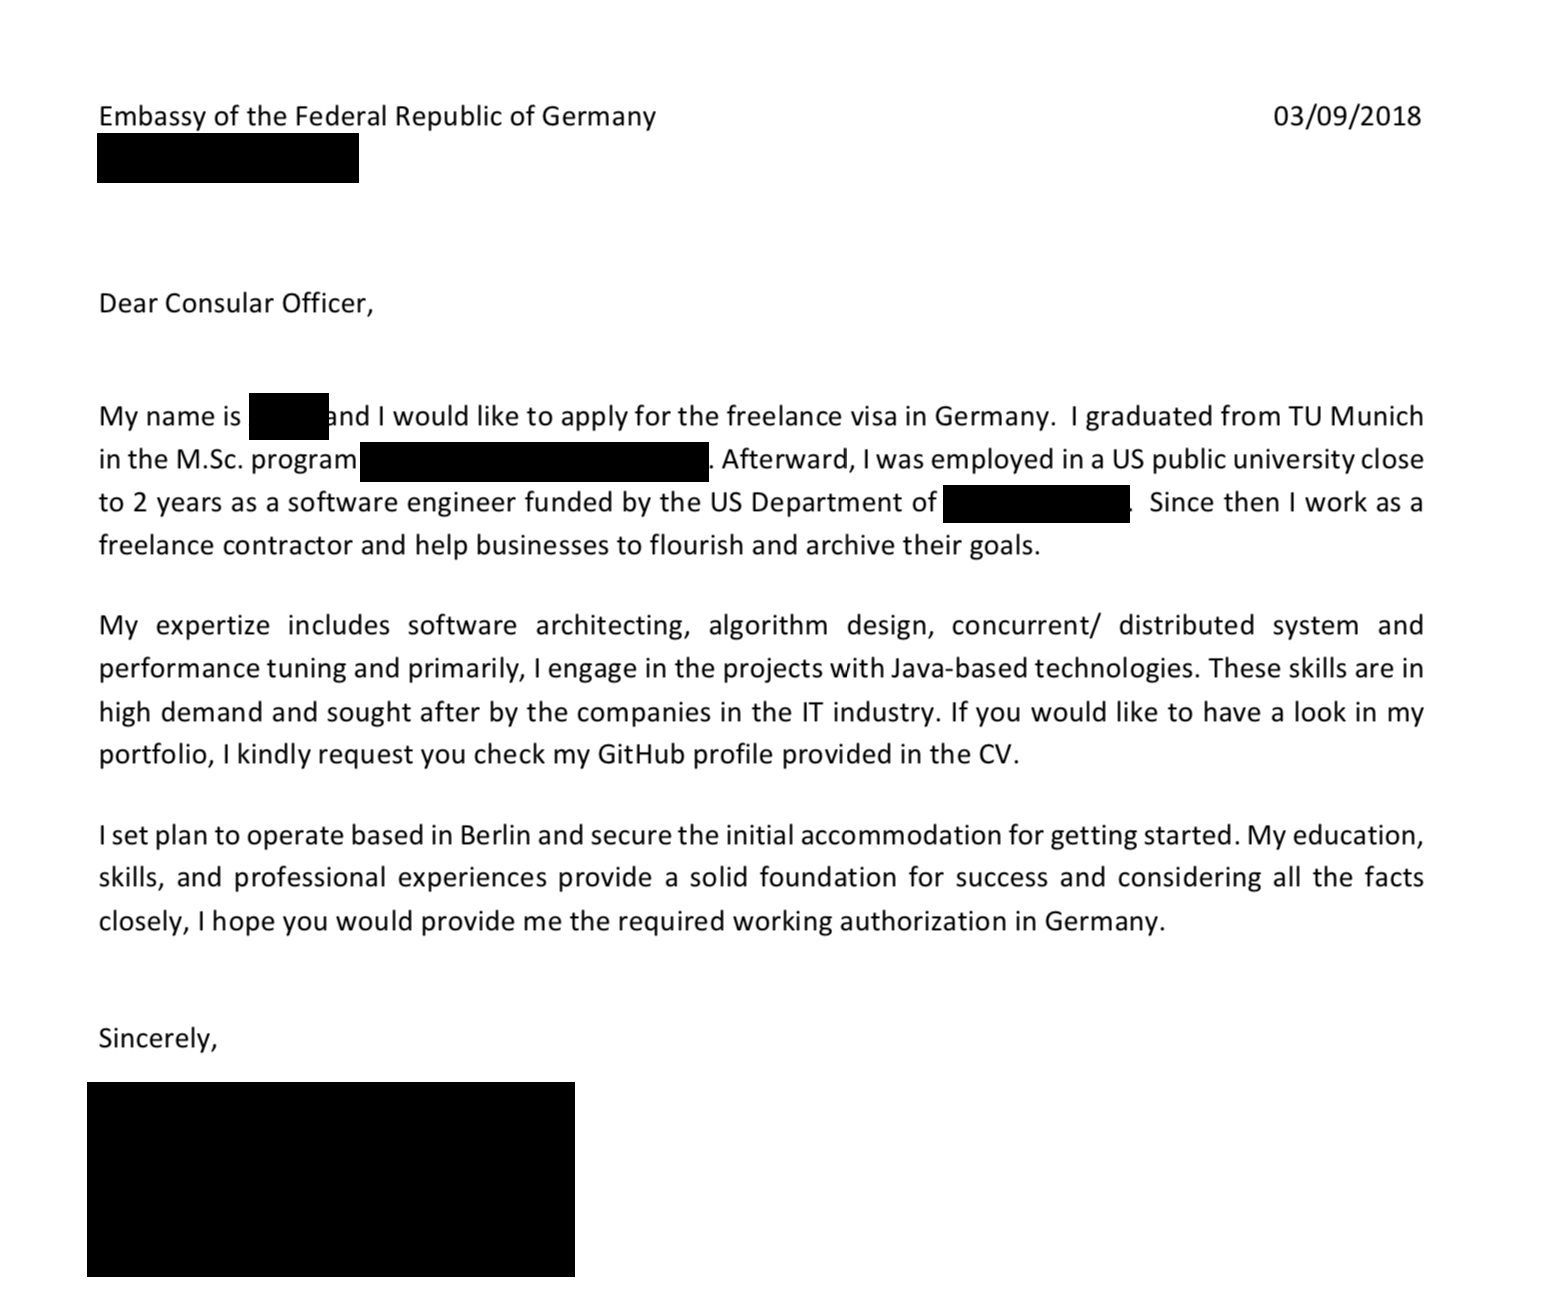 motivation letter for german embassy  How to apply for the German Freelance Visa - All About Berlin - motivation letter for german embassy